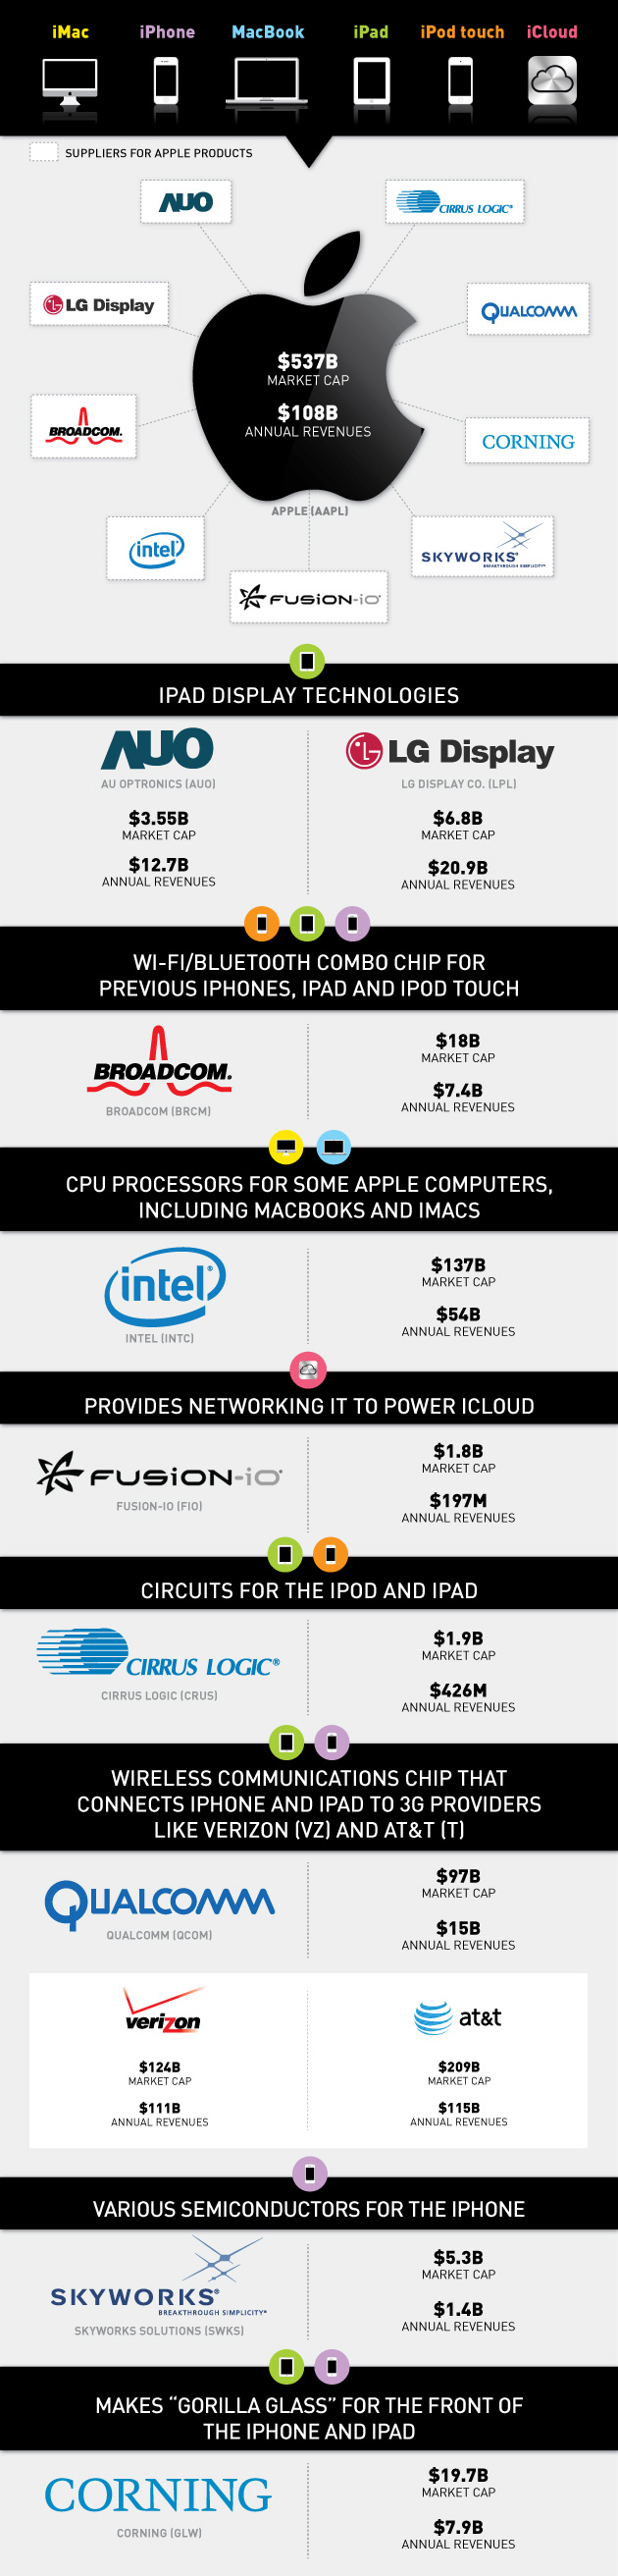 Behind-Apple's-Iproducts-infographic